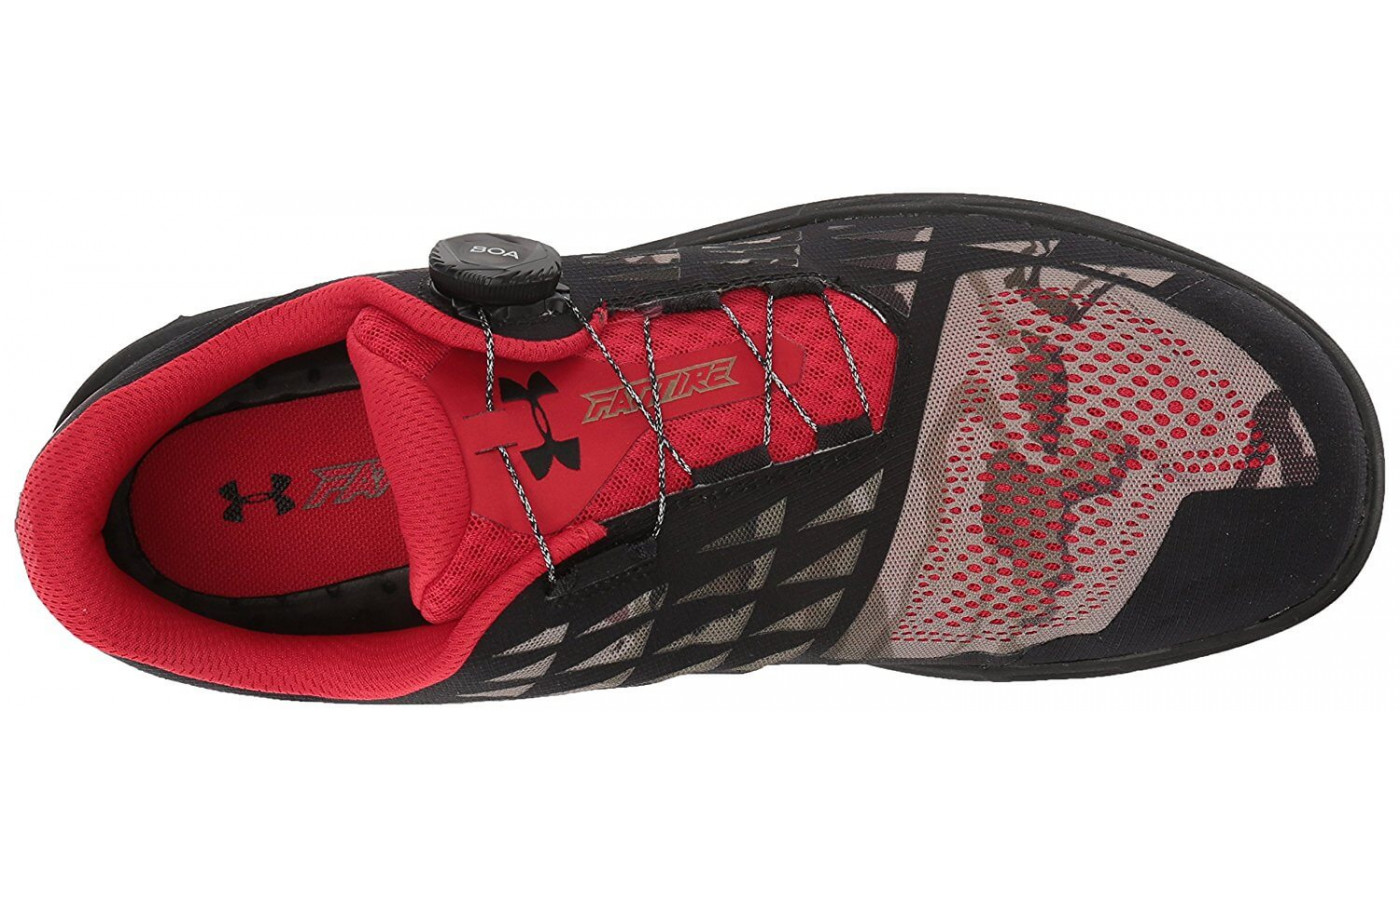 The Under Armour Fat Tire 2 lacing system